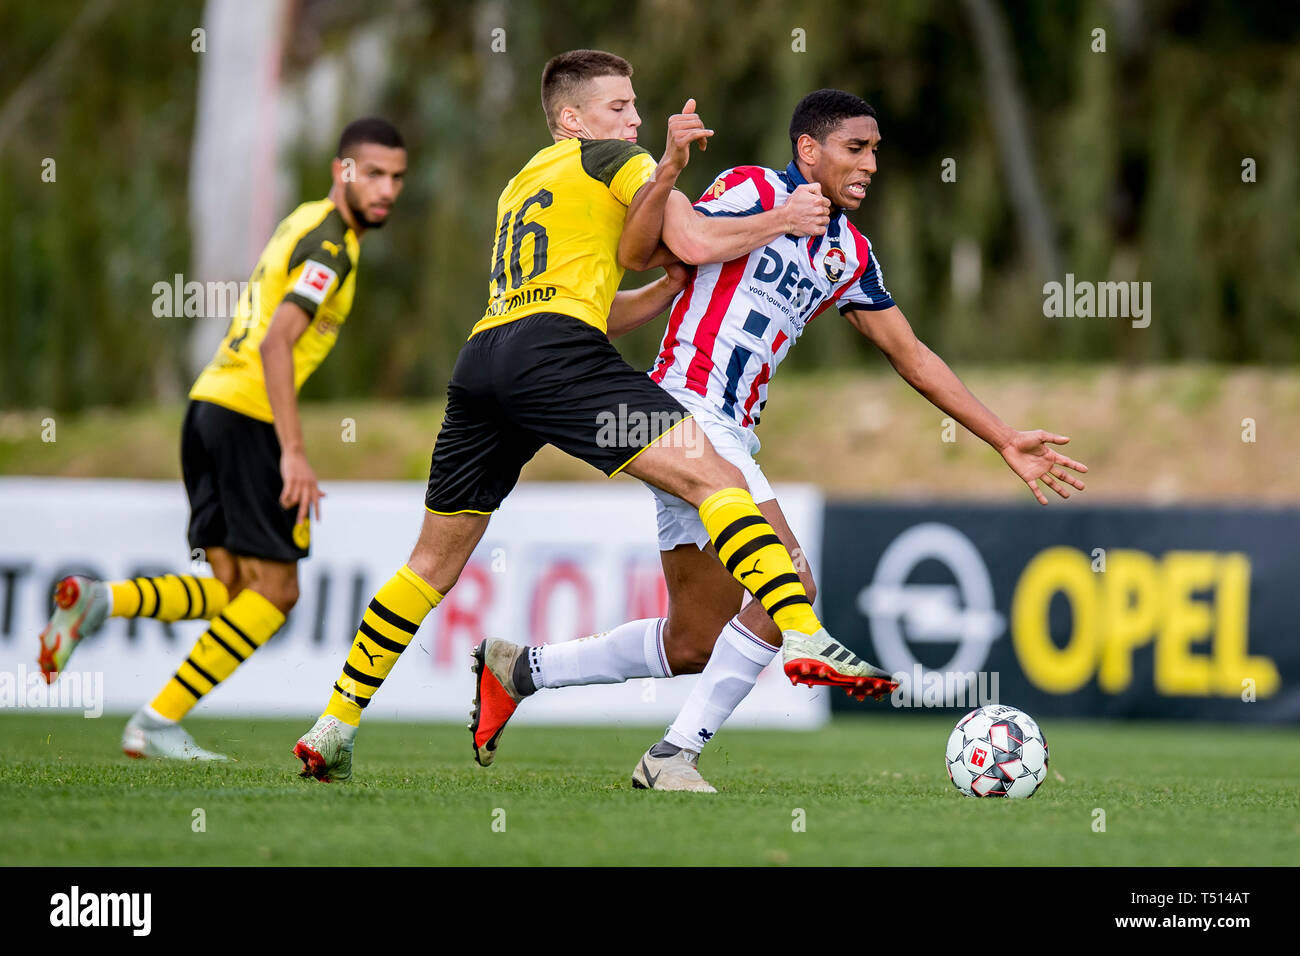 Fußball: Testspiele, BVB Winter-Trainingslager 2019, Borussia Dortmund - Willem II Tilburg am 11.01.2019 im 'Dama de Noche' in Marbella (Spanien).  Do - Stock Image